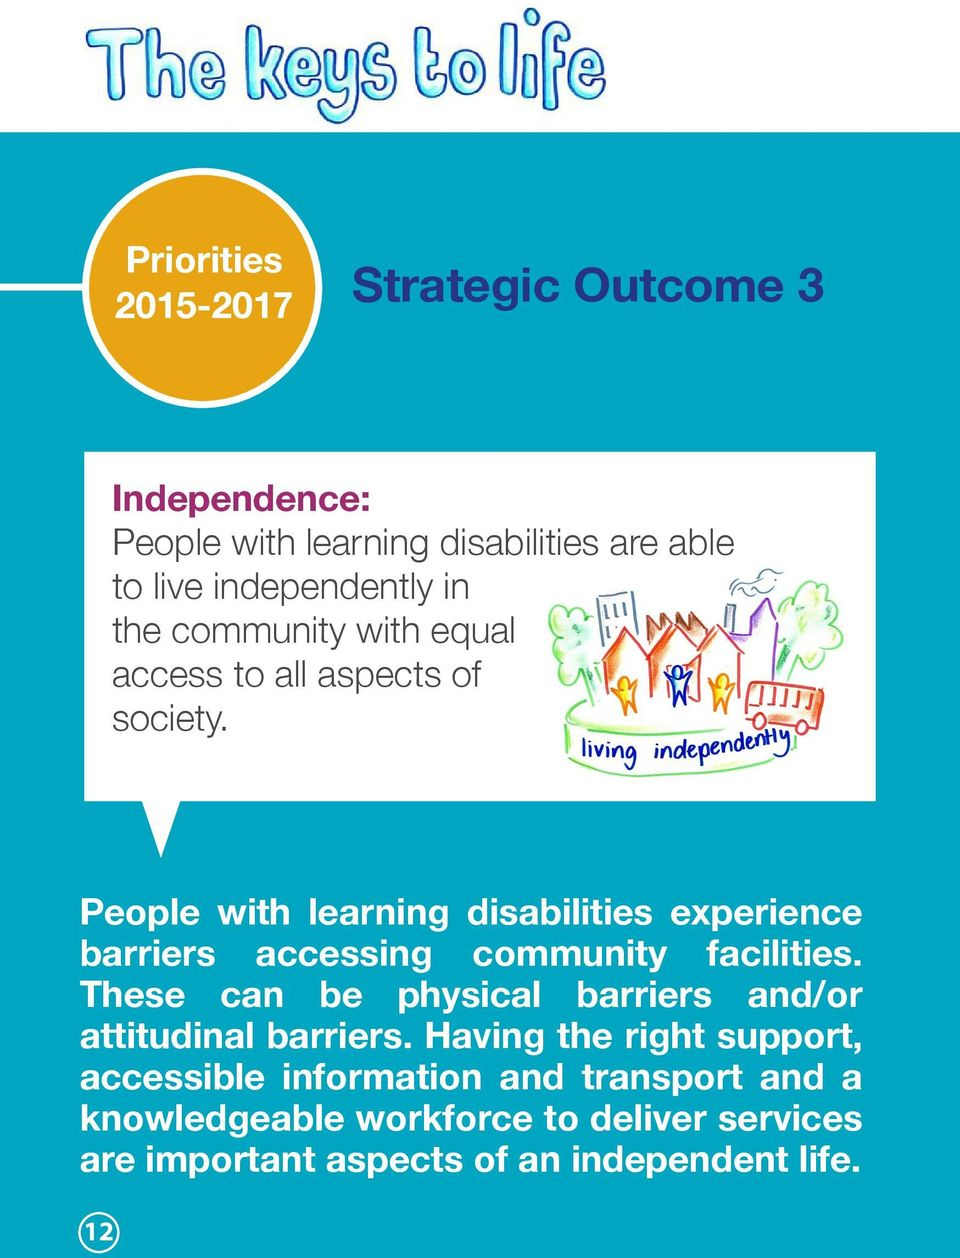 People with learning disabilities experience barriers accessing community facilities.